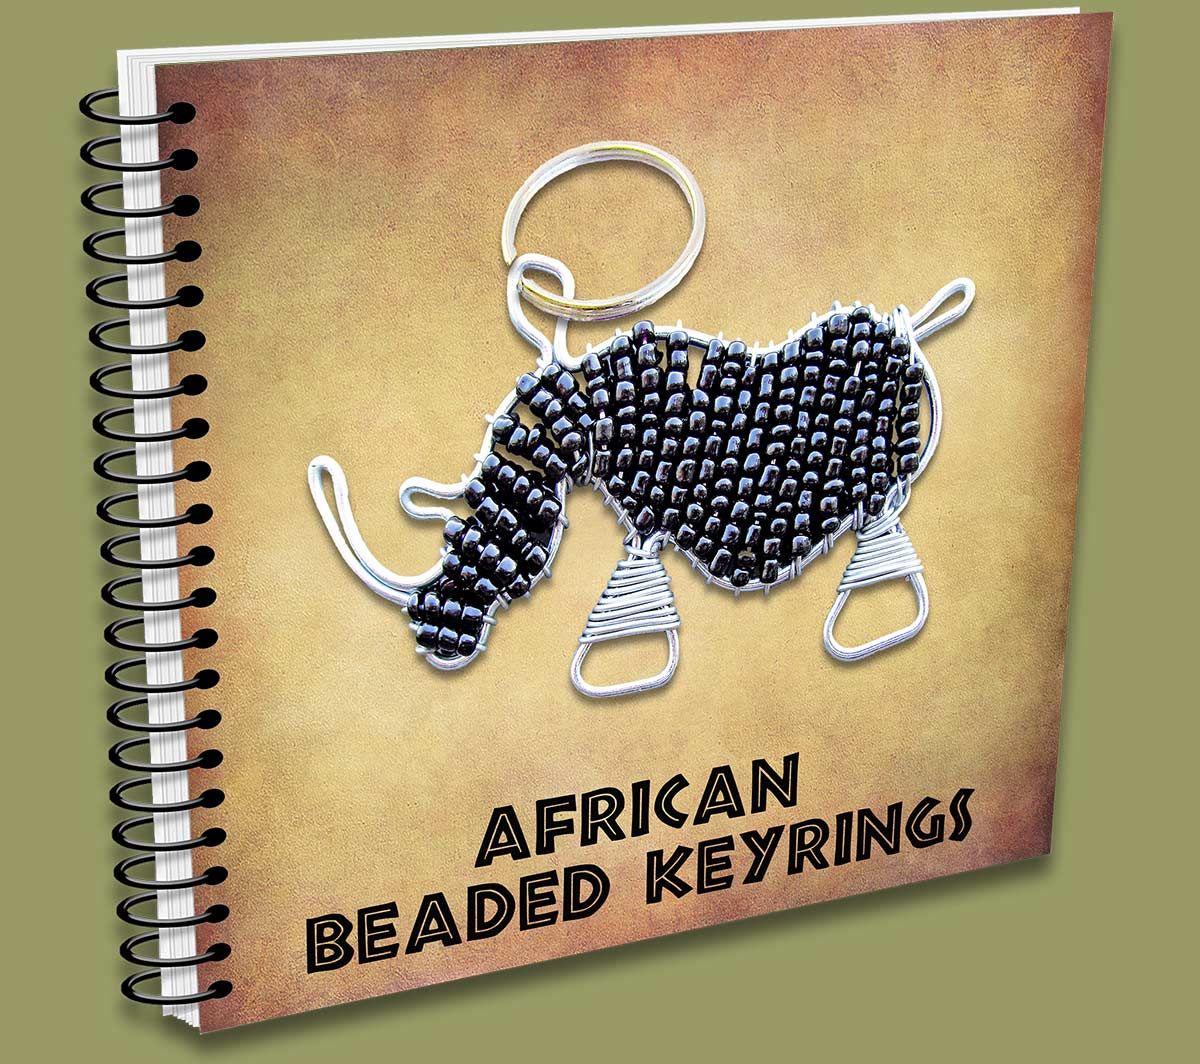 African Beaded Keyrings Resellers Catalogue